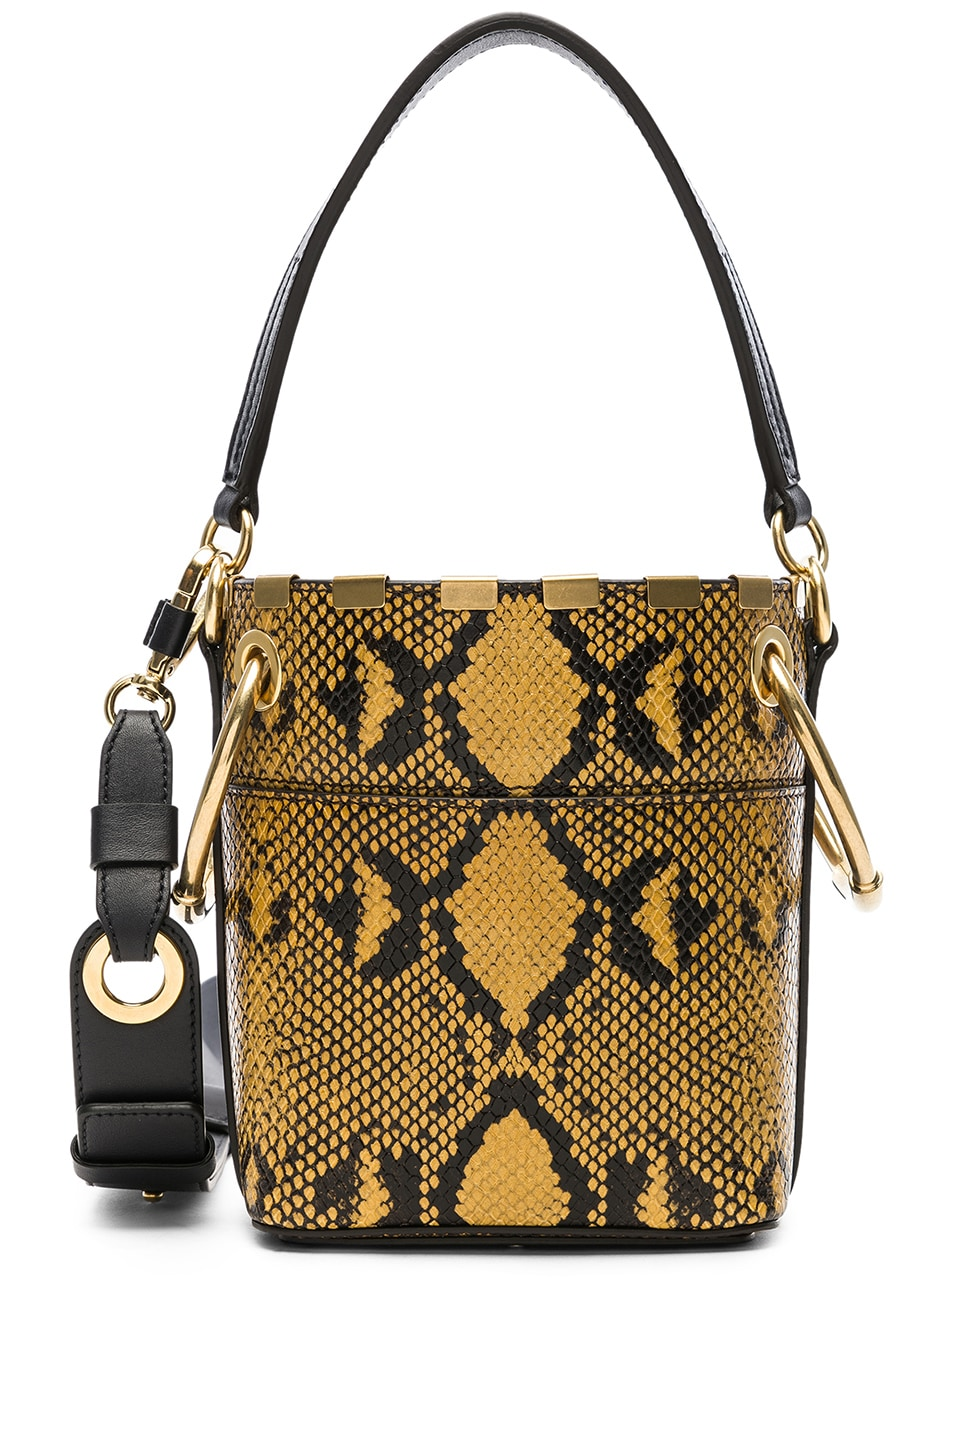 Image 1 of Chloe Mini Roy Python Print Leather Bucket Bag in September Sun 4346bd92a85a9